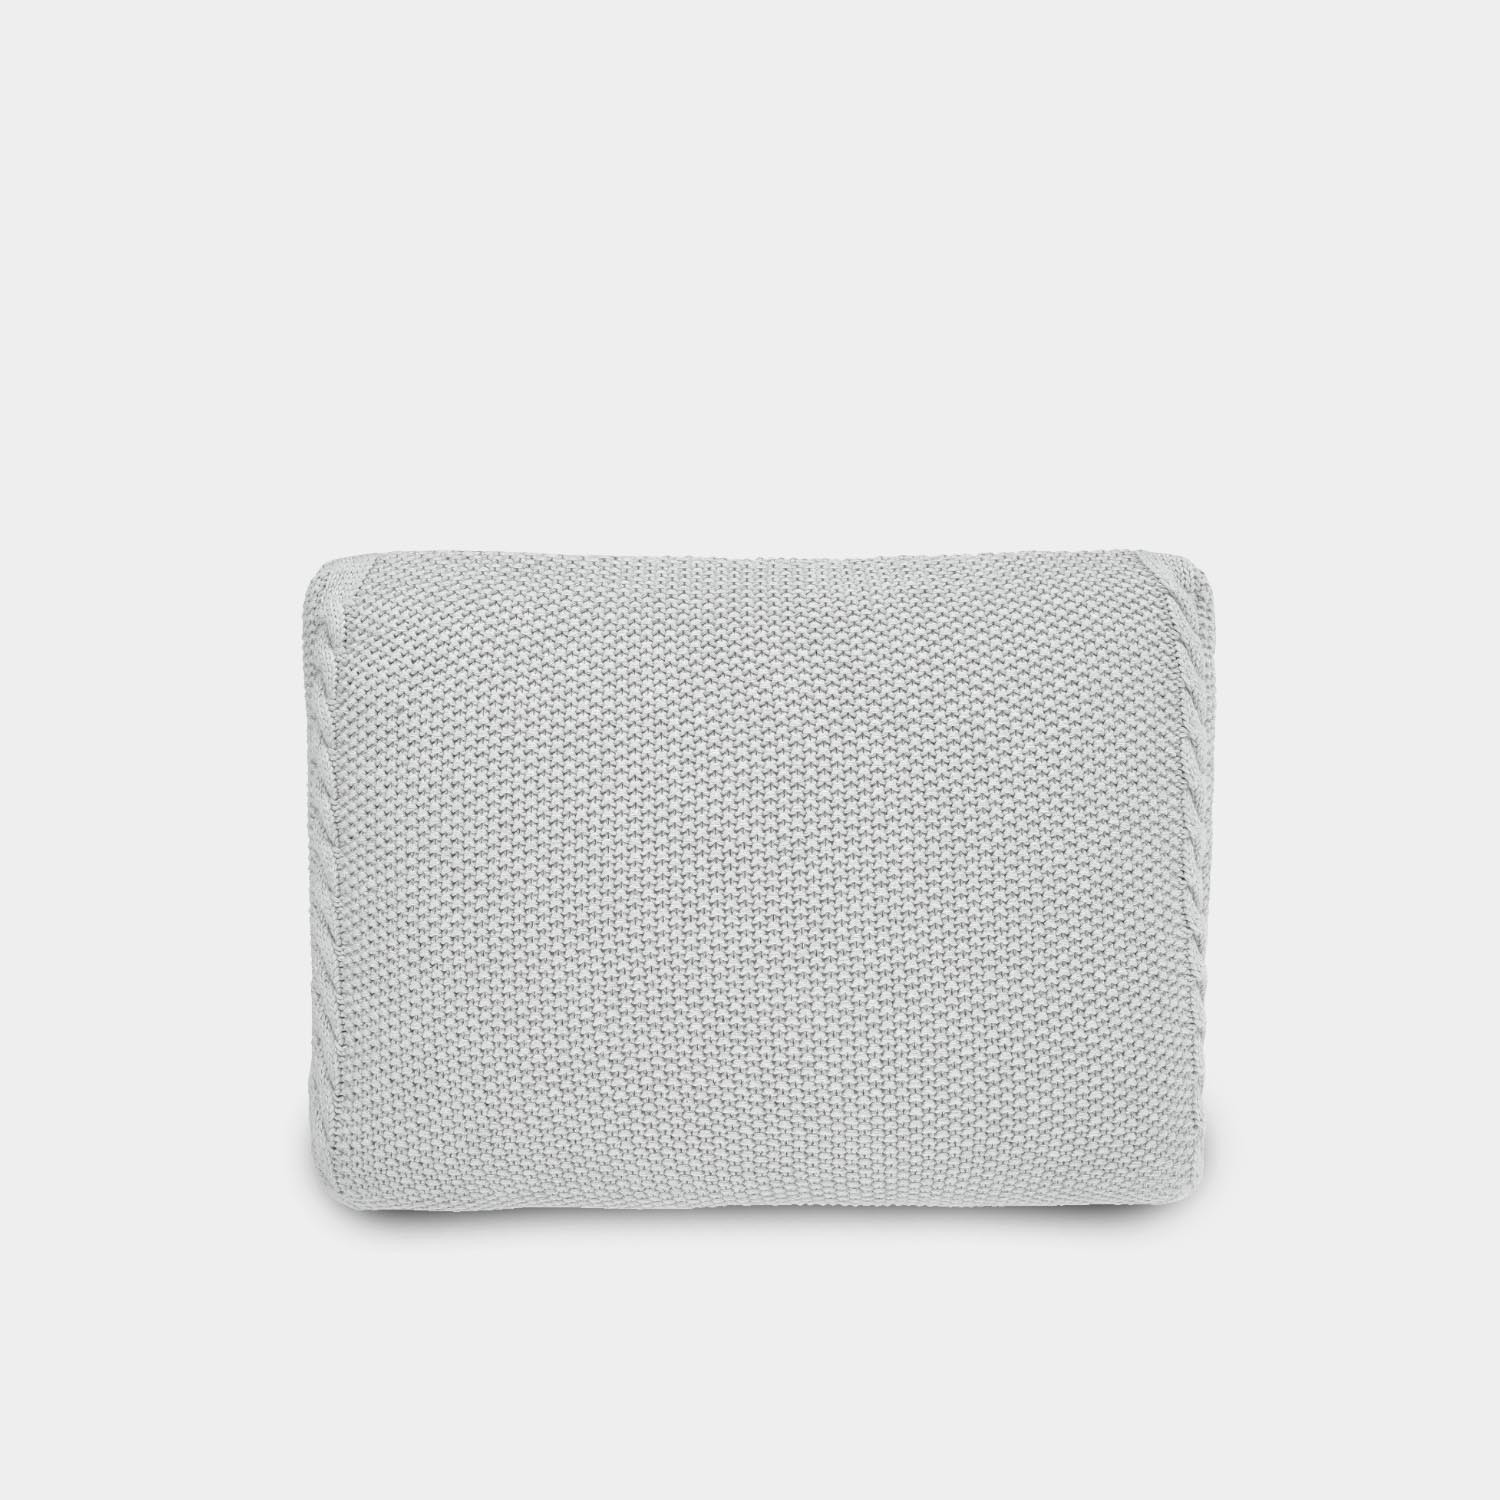 North Cable Pillow Cover Rectangular